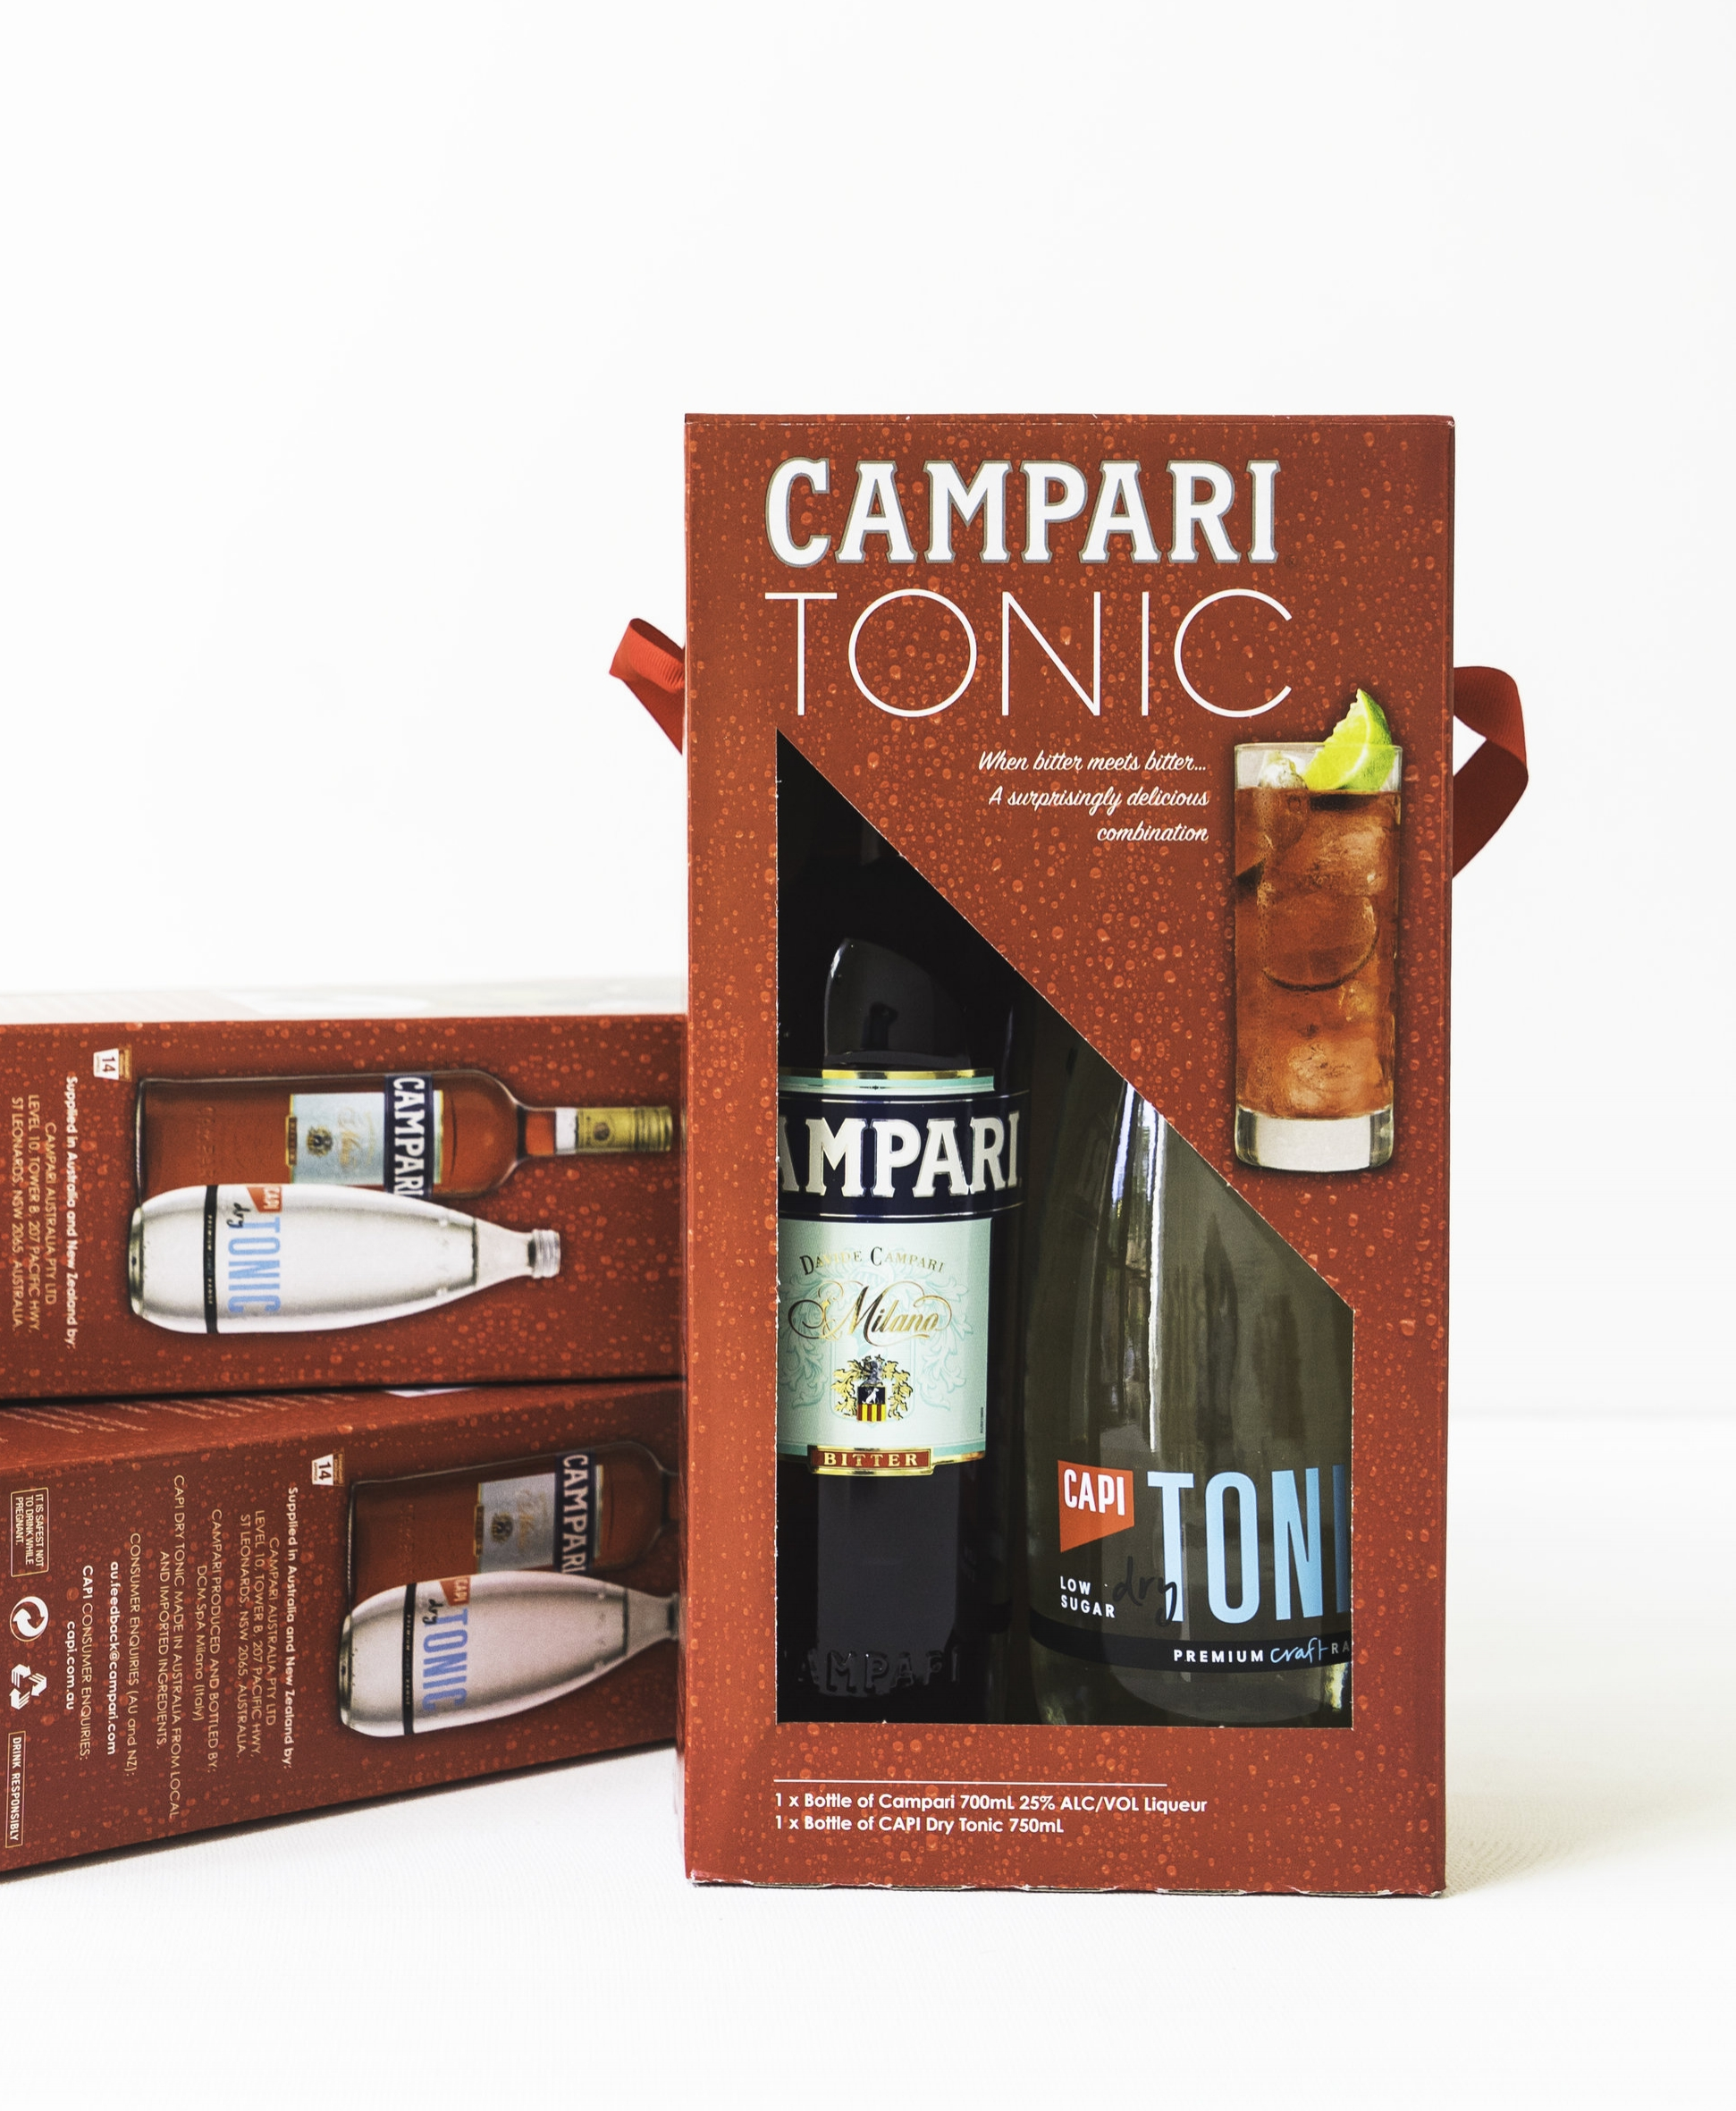 CAMPARI + DRY TONIC PACKAGING.jpg